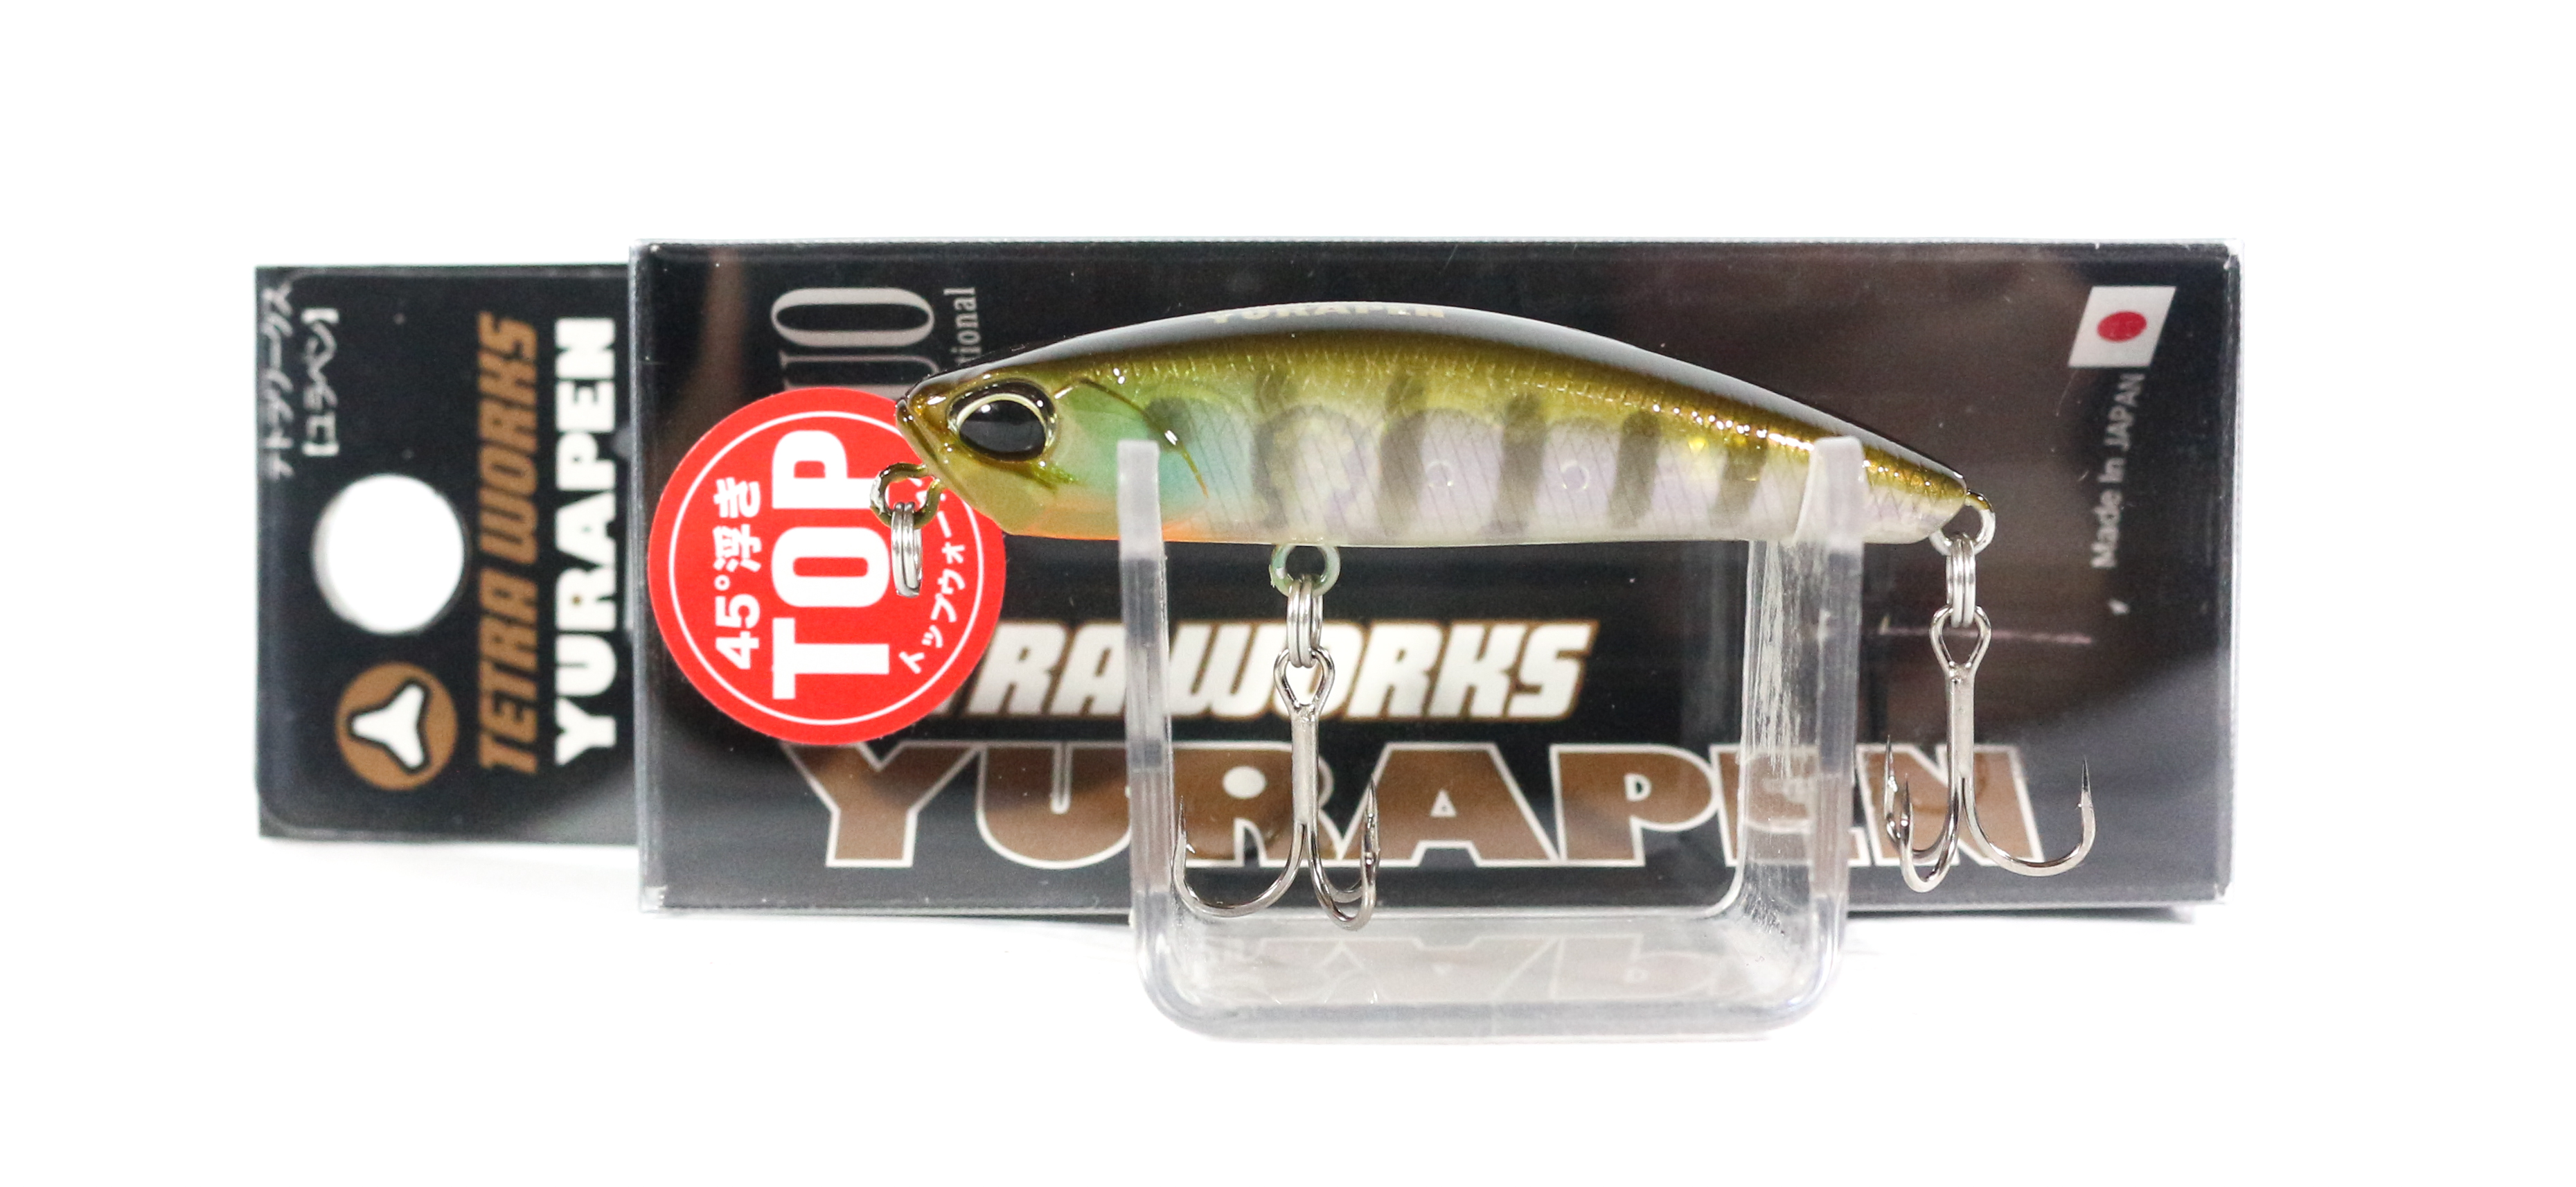 Duo Tetra Works Yurapen 48 mm Floating Lure CCC3158 (6618)